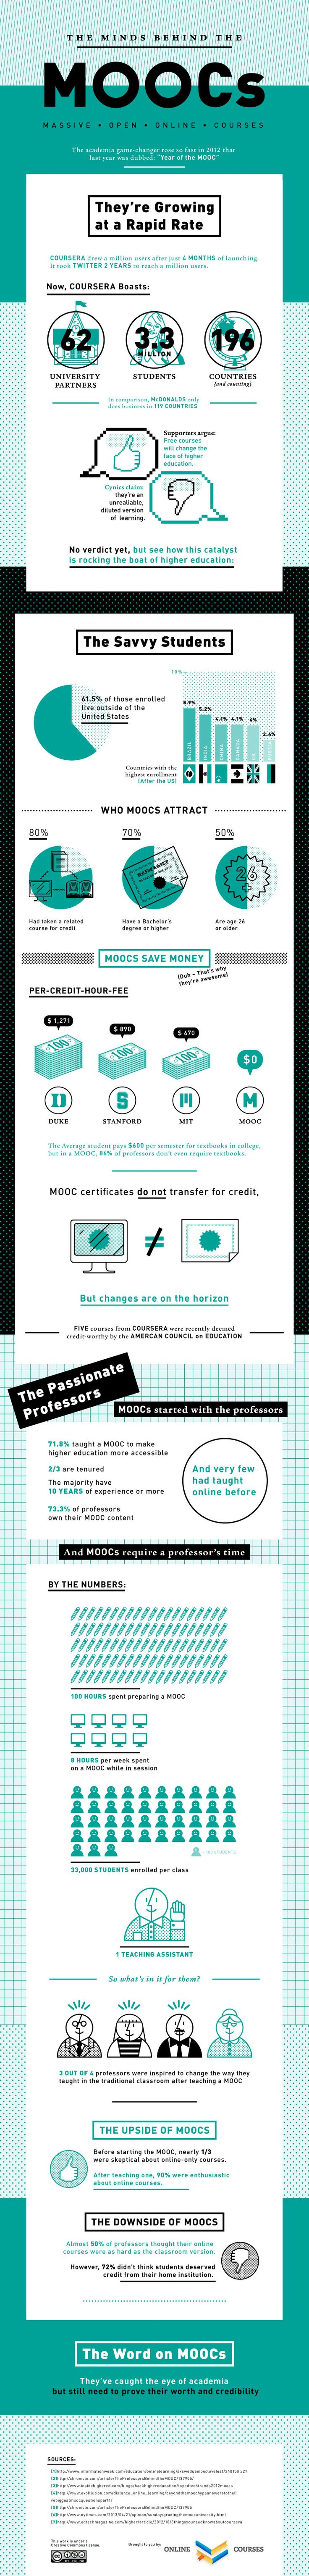 The Minds Behind The #MOOCs #E